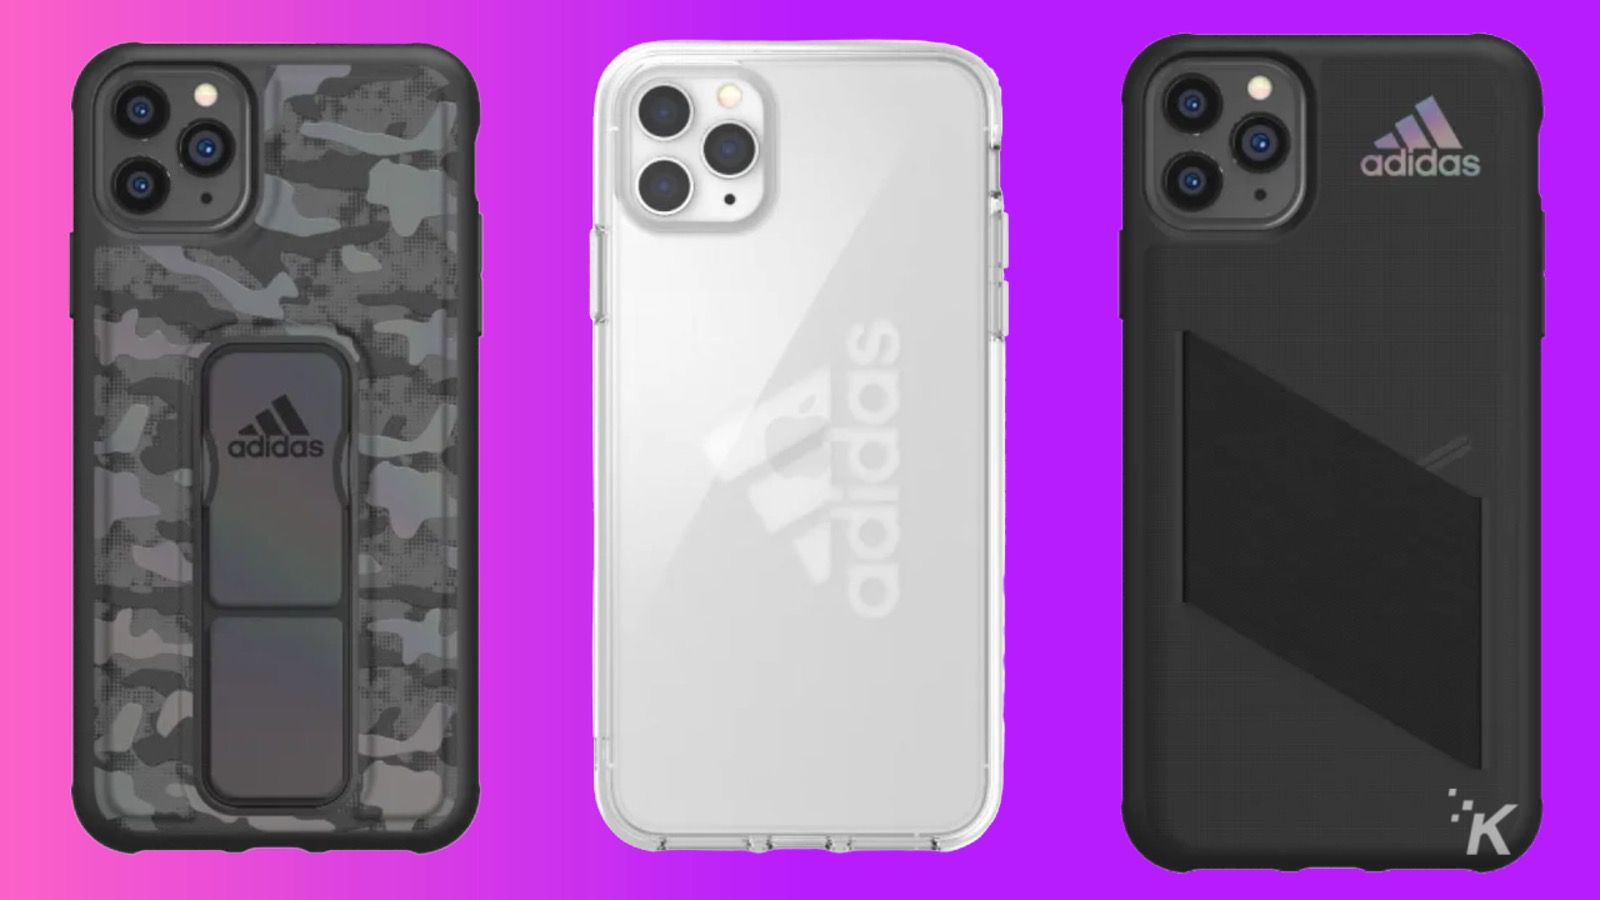 adidas iphone 11 pro max cases